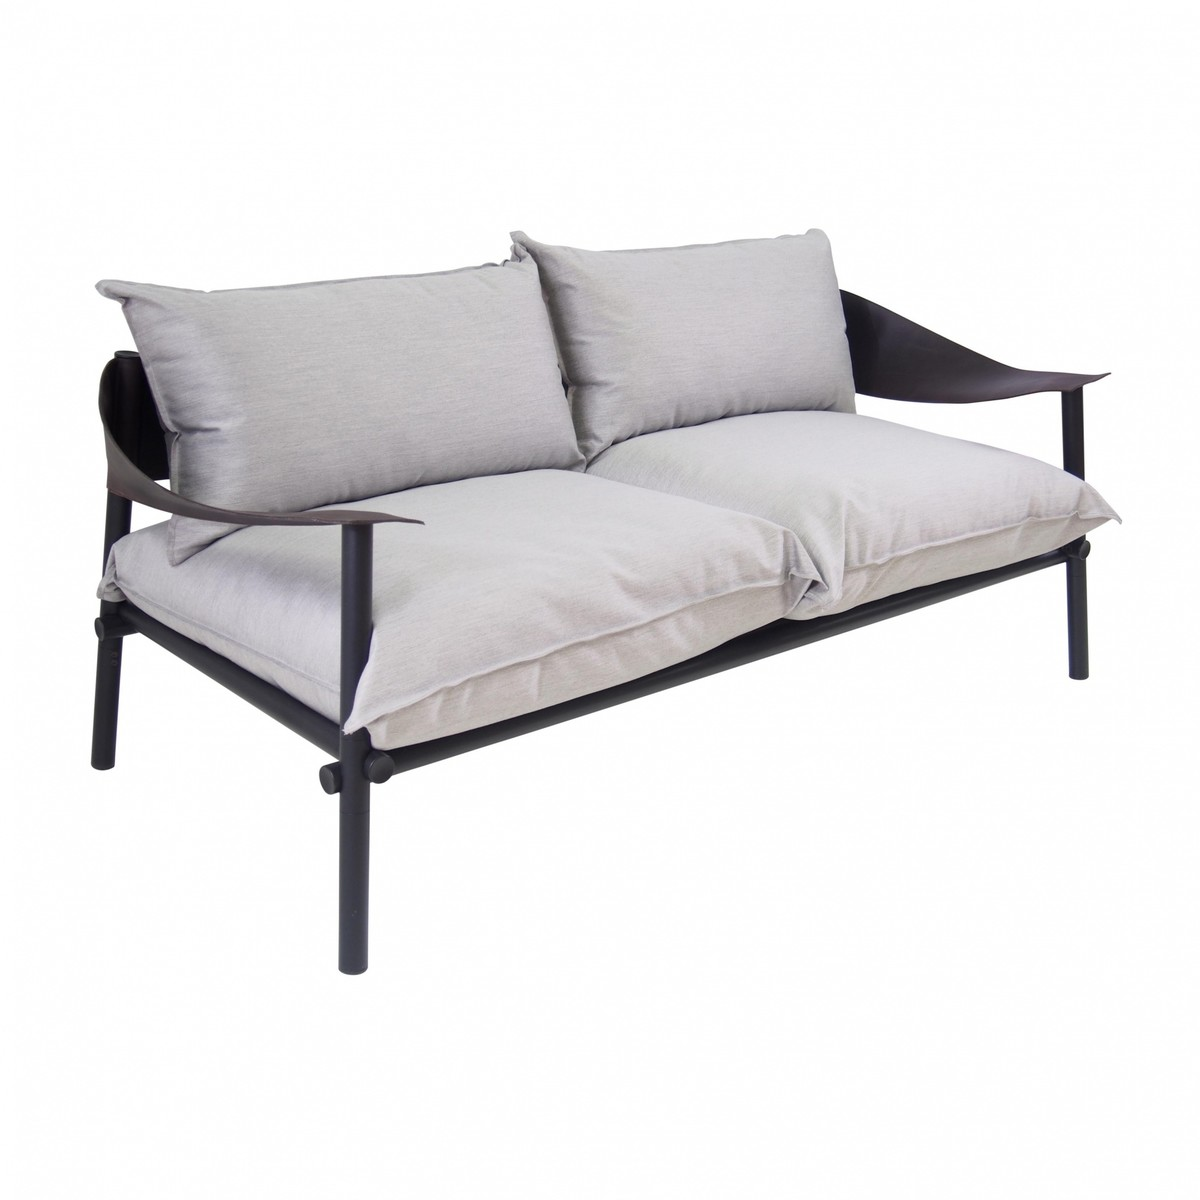 Terramare 2-seater Sofa | emu | AmbienteDirect.com